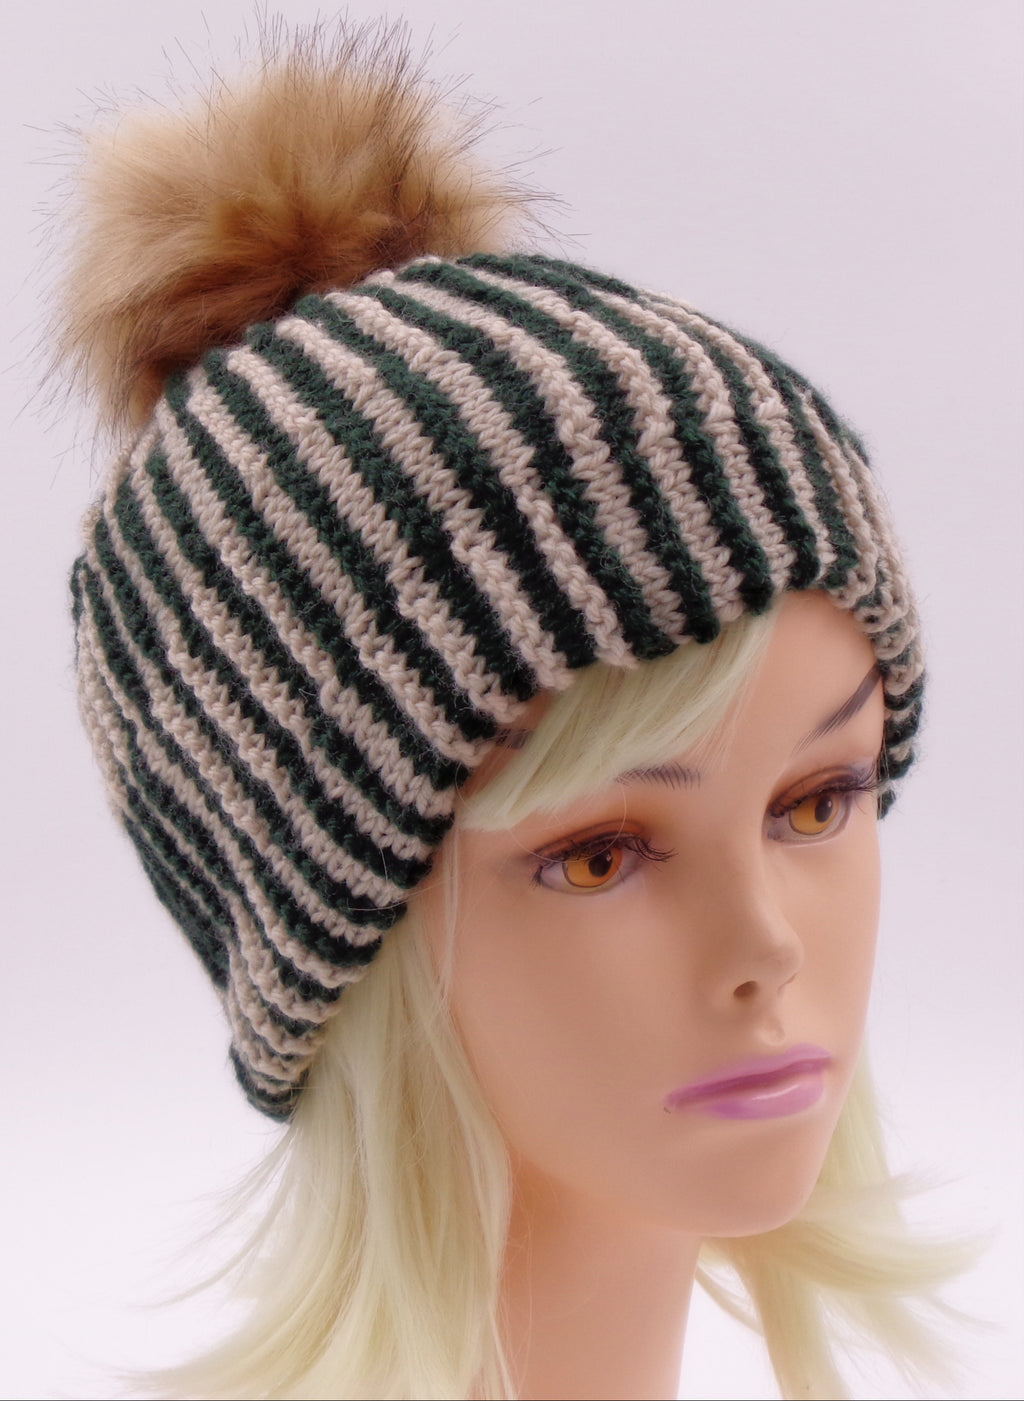 Shadow Knit Checkered Hat -Designed by Clara Masessa